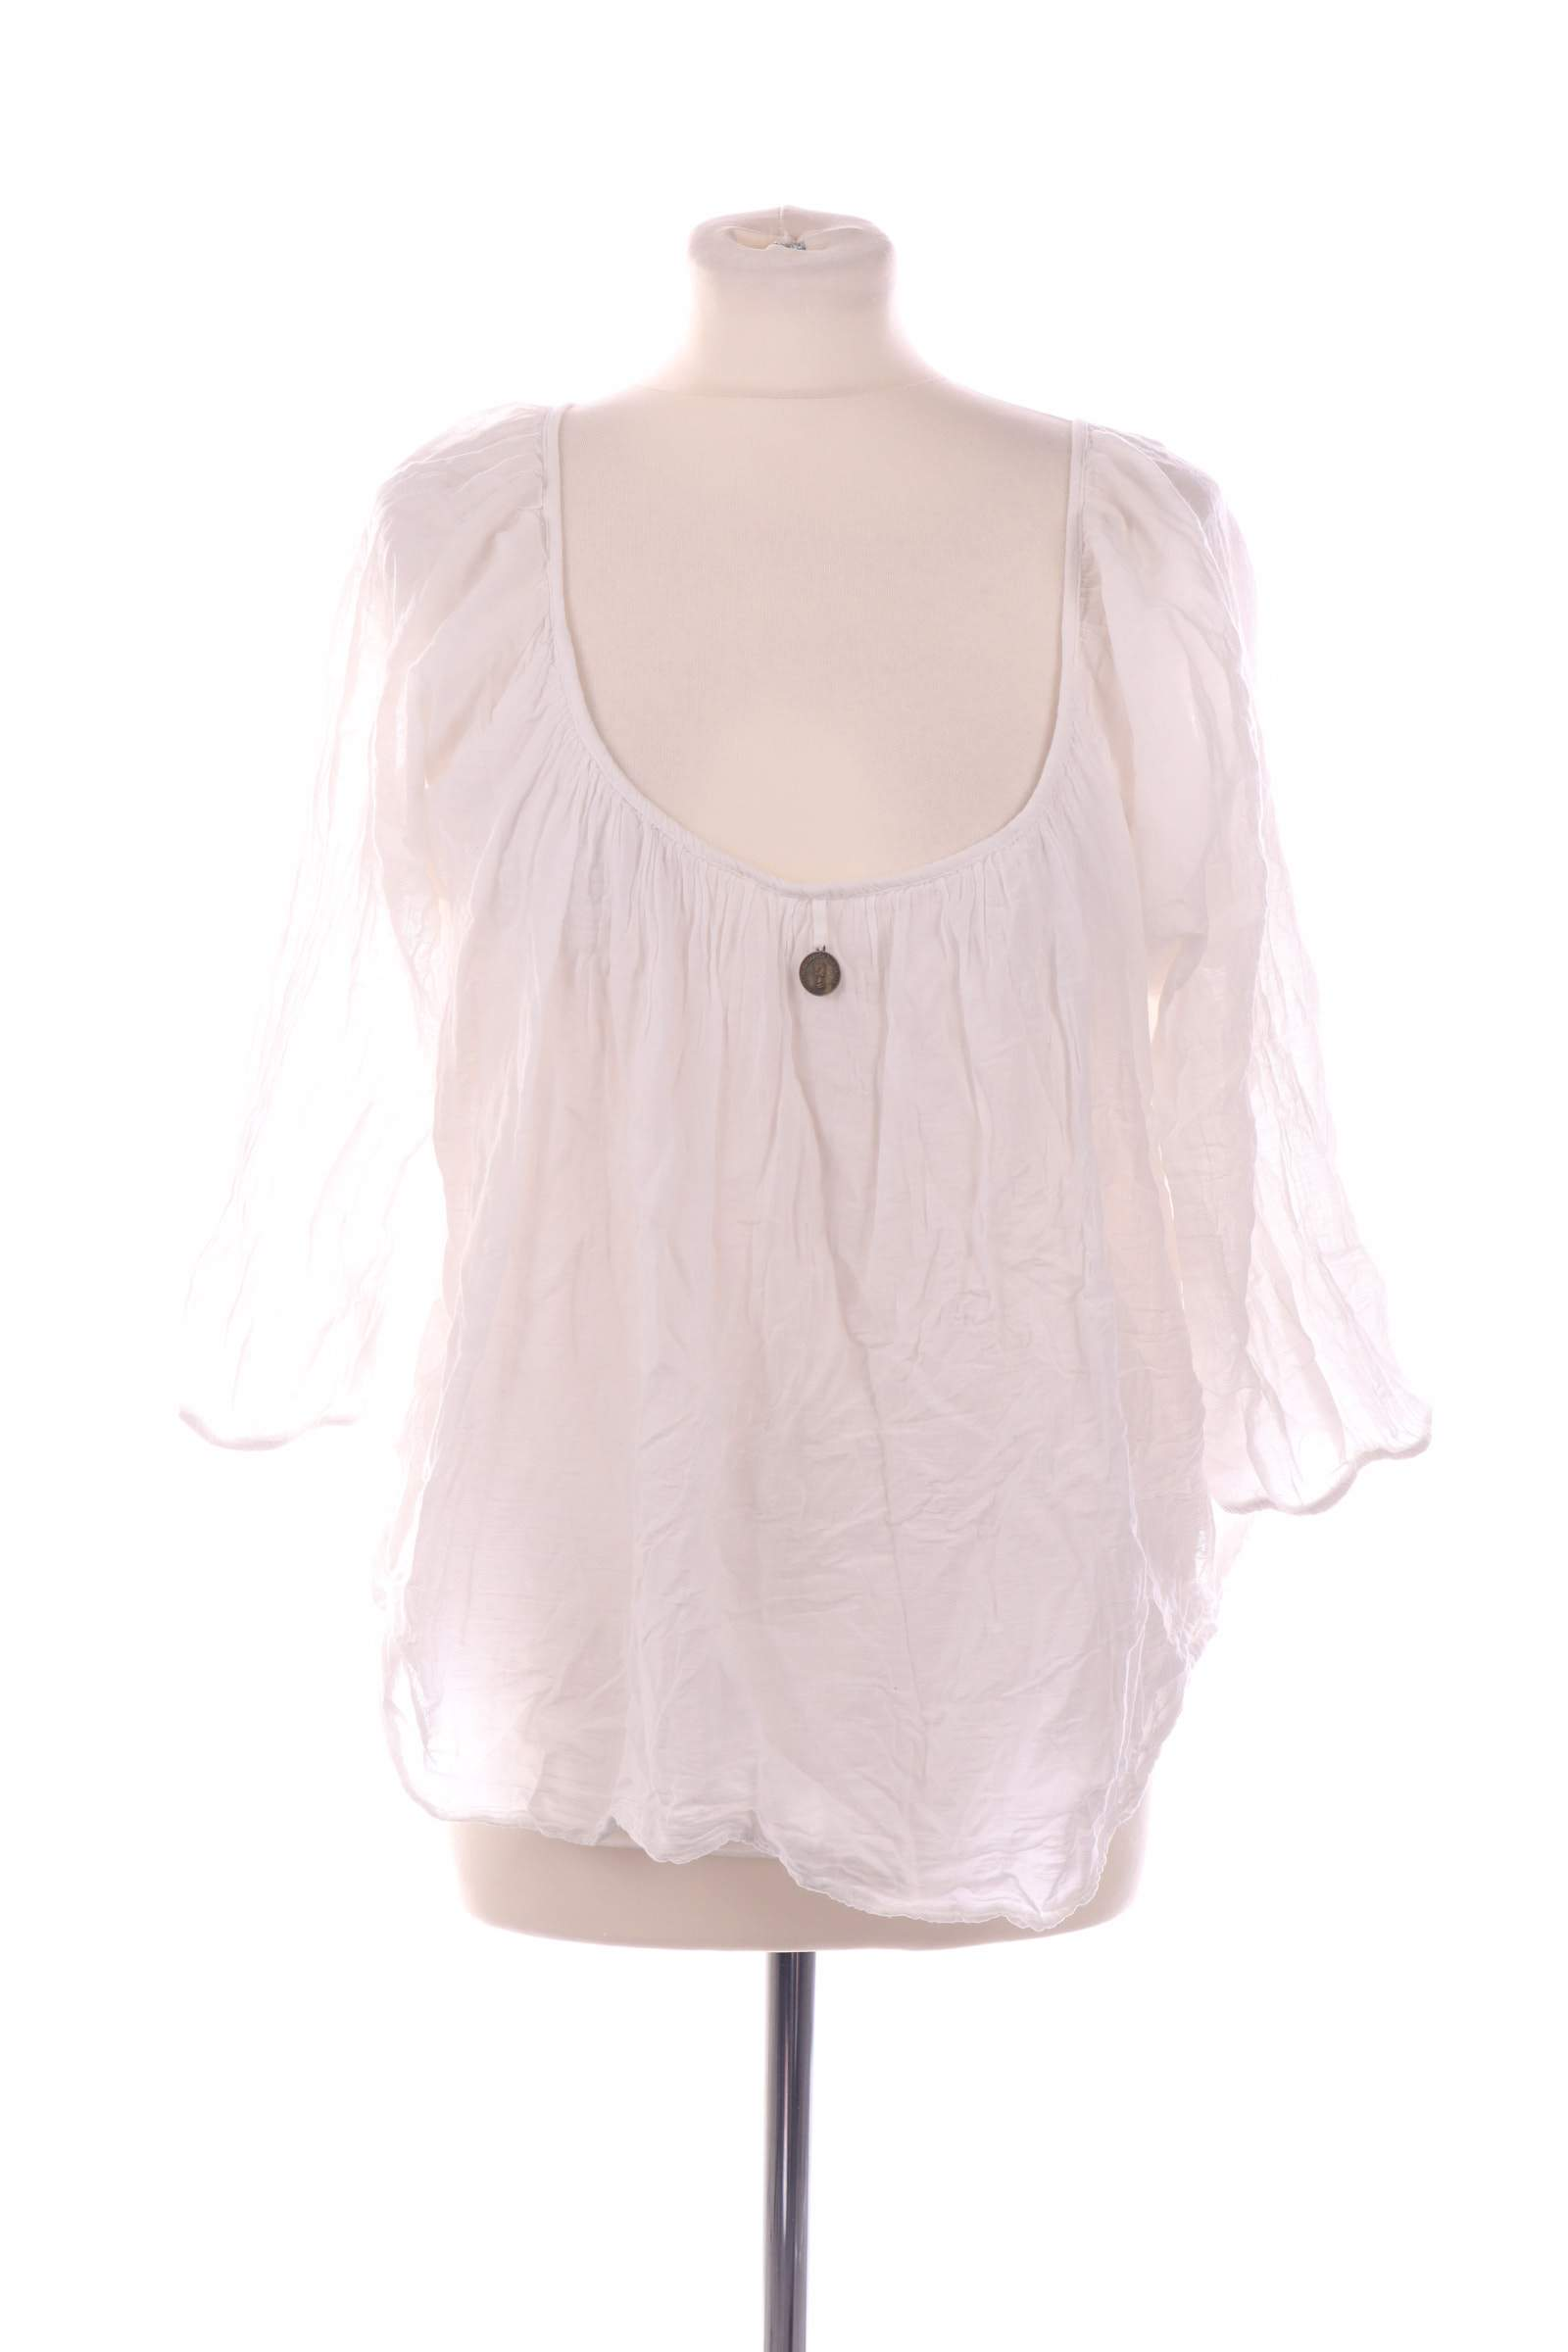 Made in Italy White Top